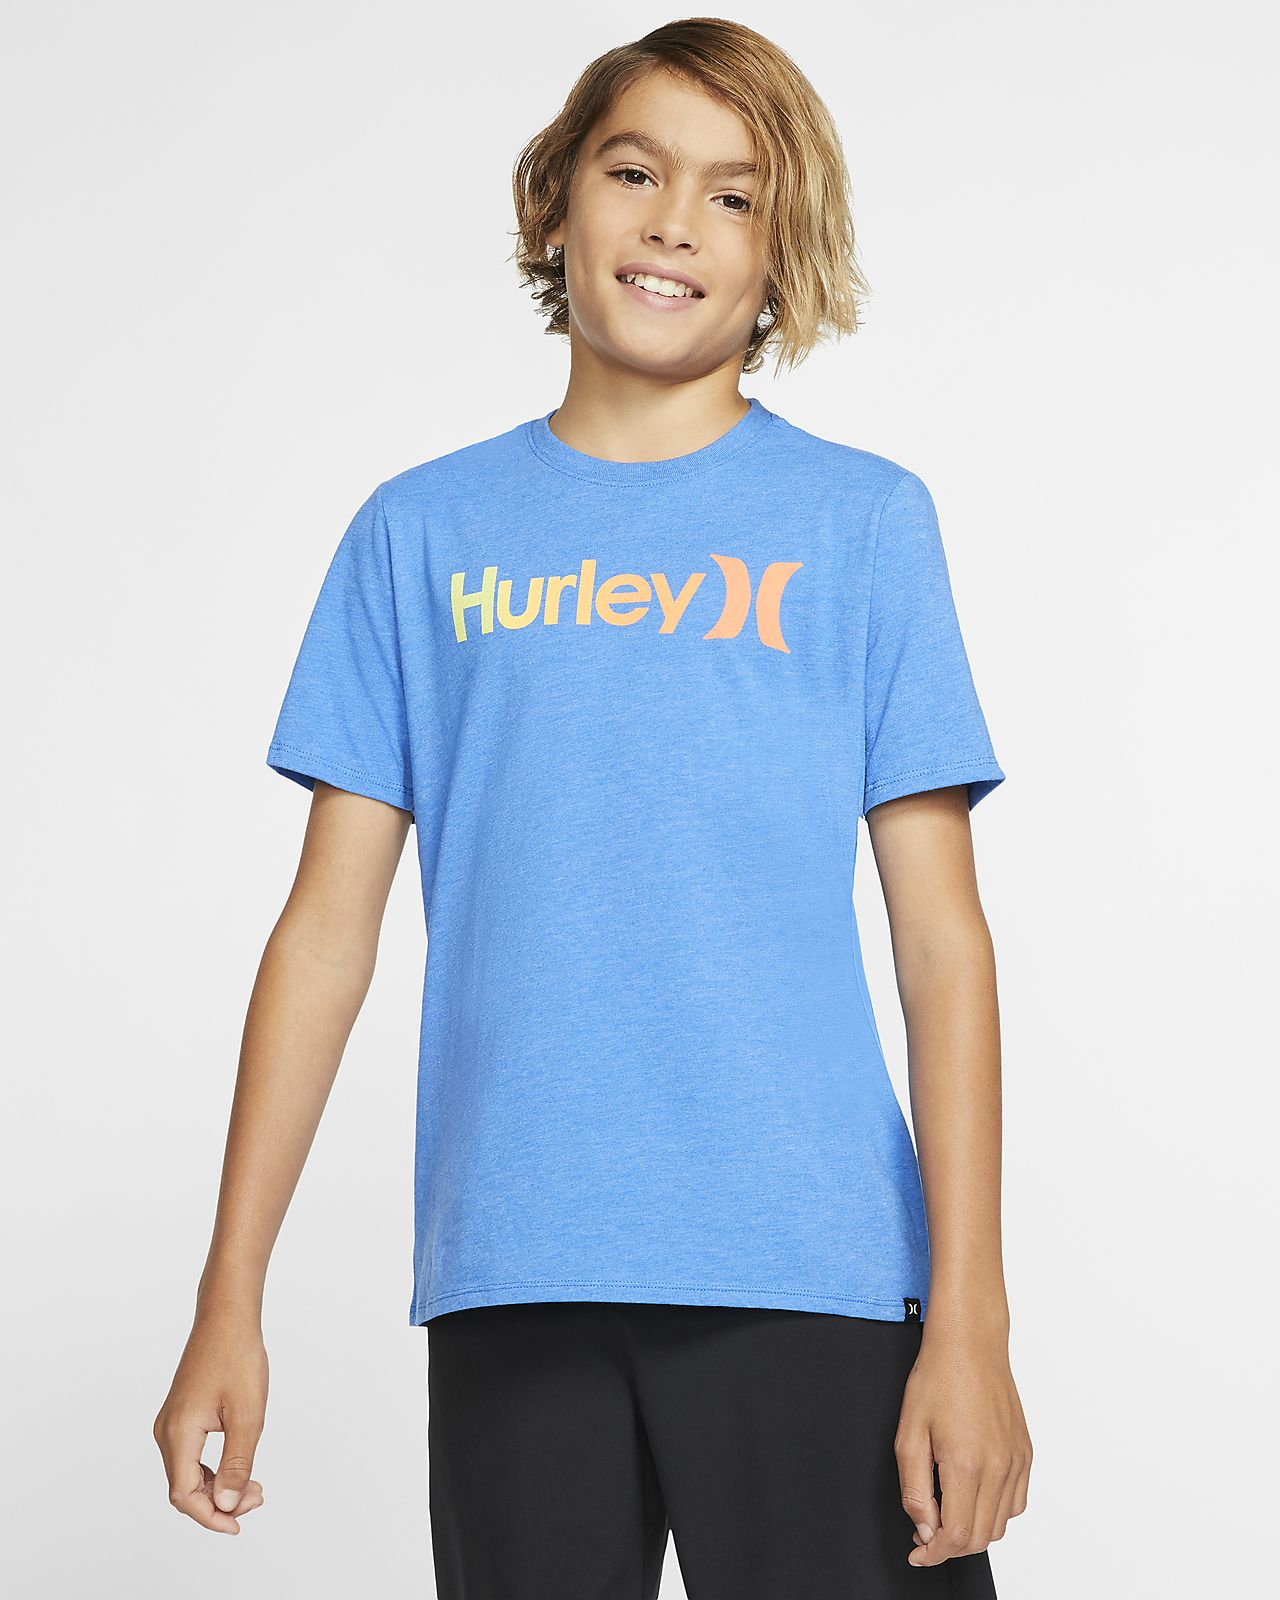 Hurley Premium One And Only Gradient 2.0 Boys' T-Shirt